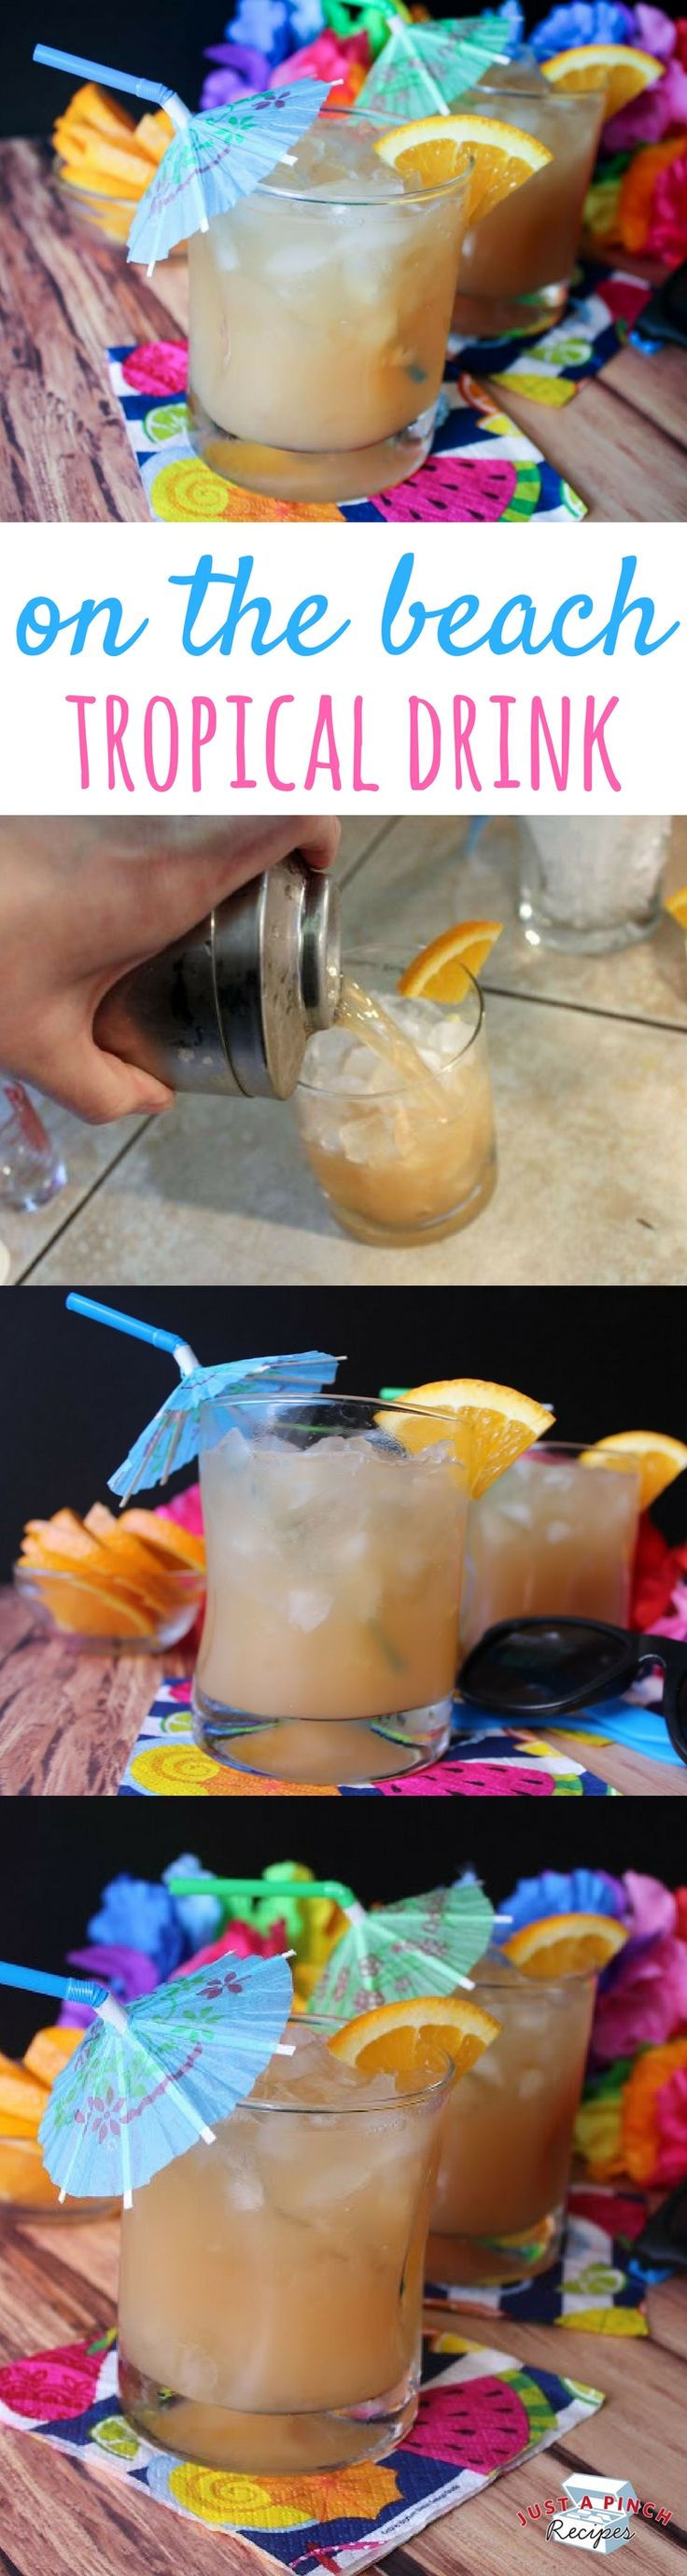 This is a cool and refreshing tropical drink perfect for the summertime. Great for your next pool party or backyard BBQ. An easy summer drink!